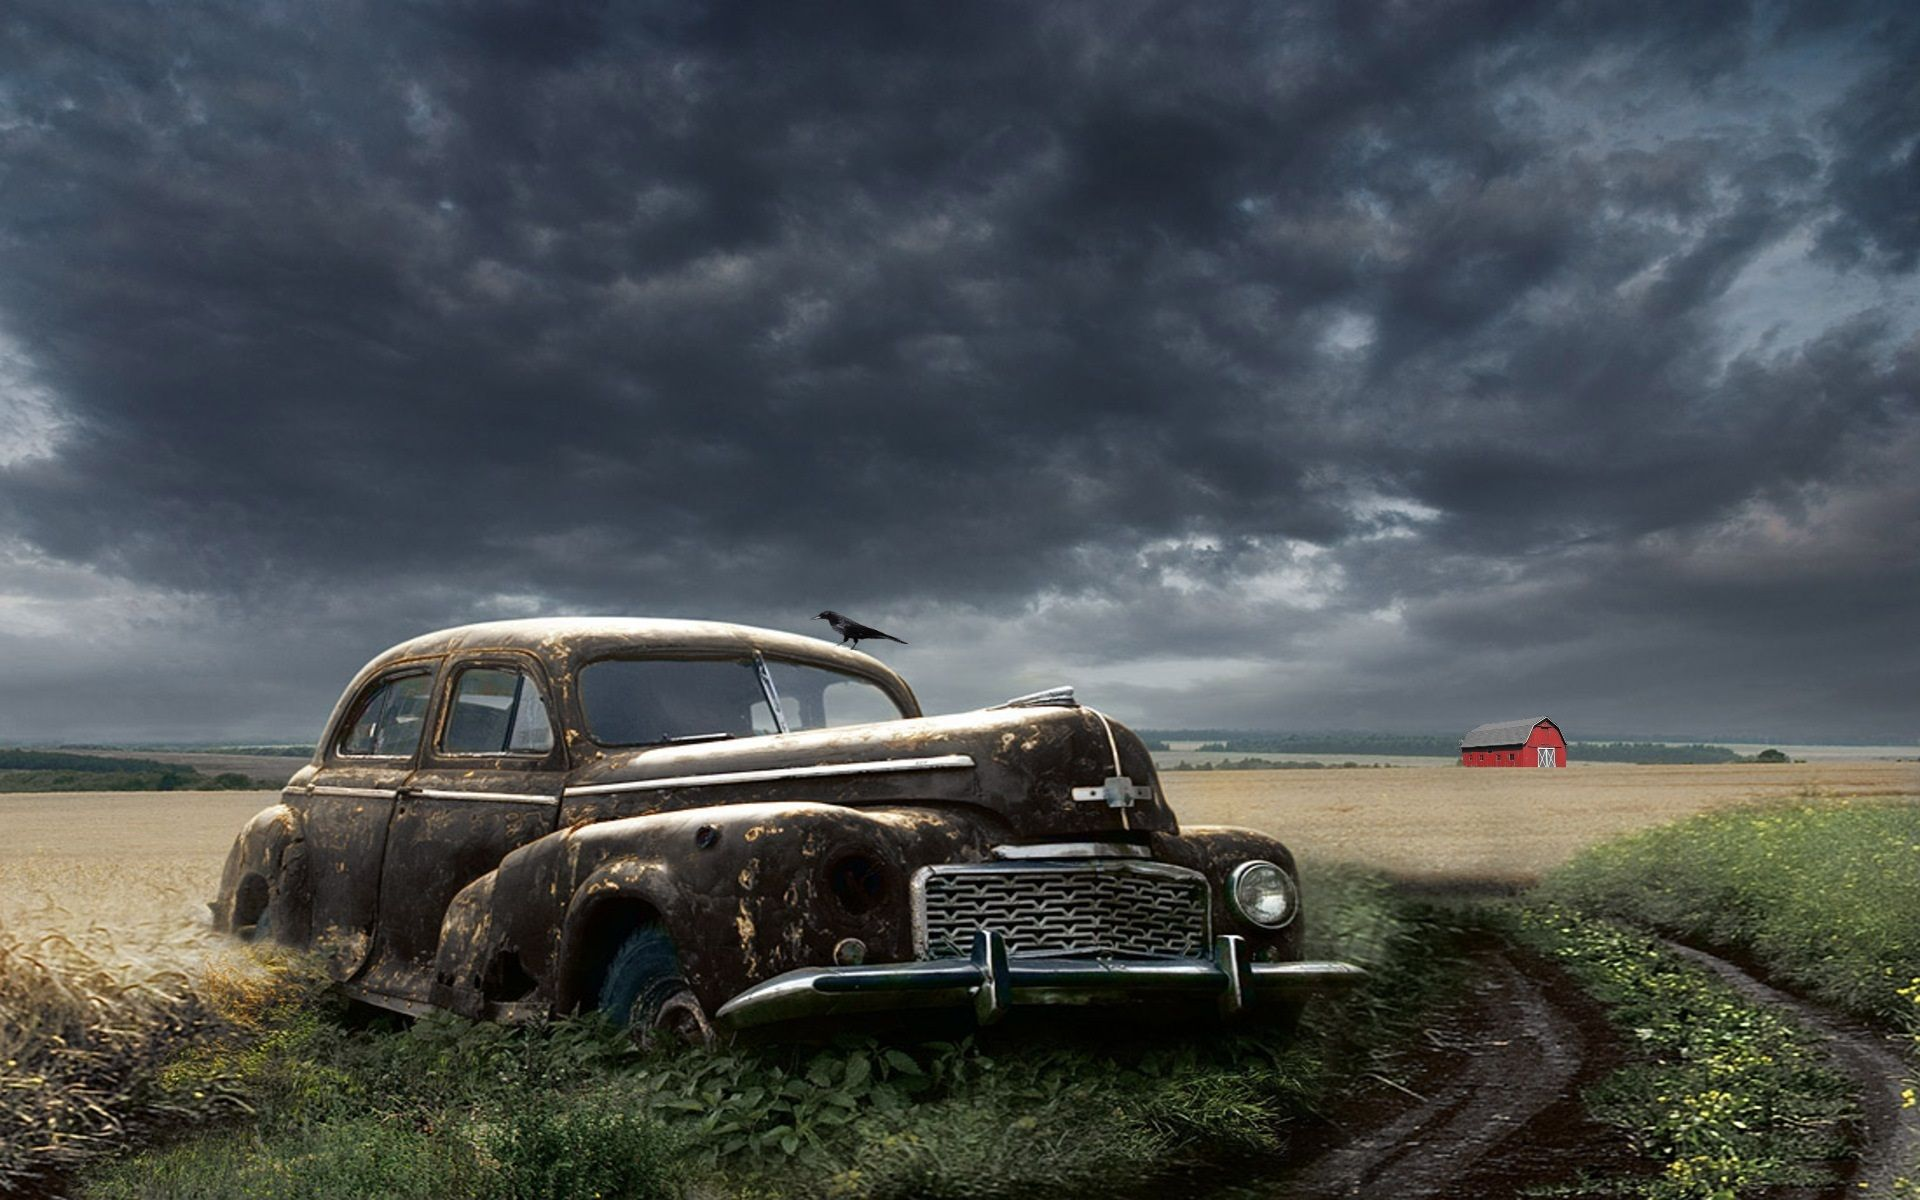 beautiful old rusty car wallpapers - Google Search | GeoLife ...